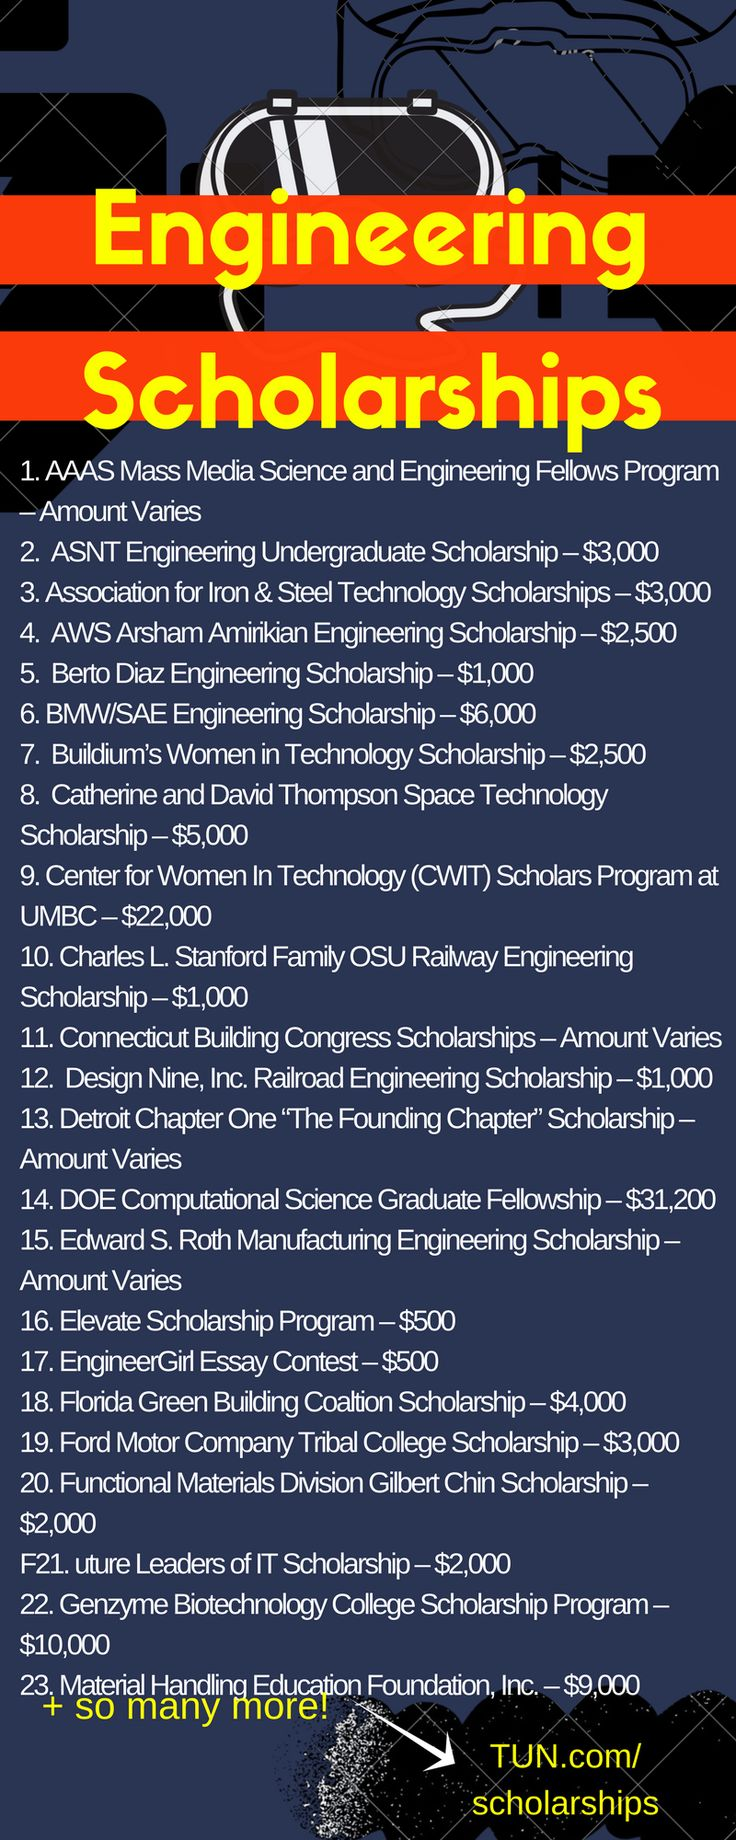 Here is a selection of Engineering Scholarships that are listed on TUN.